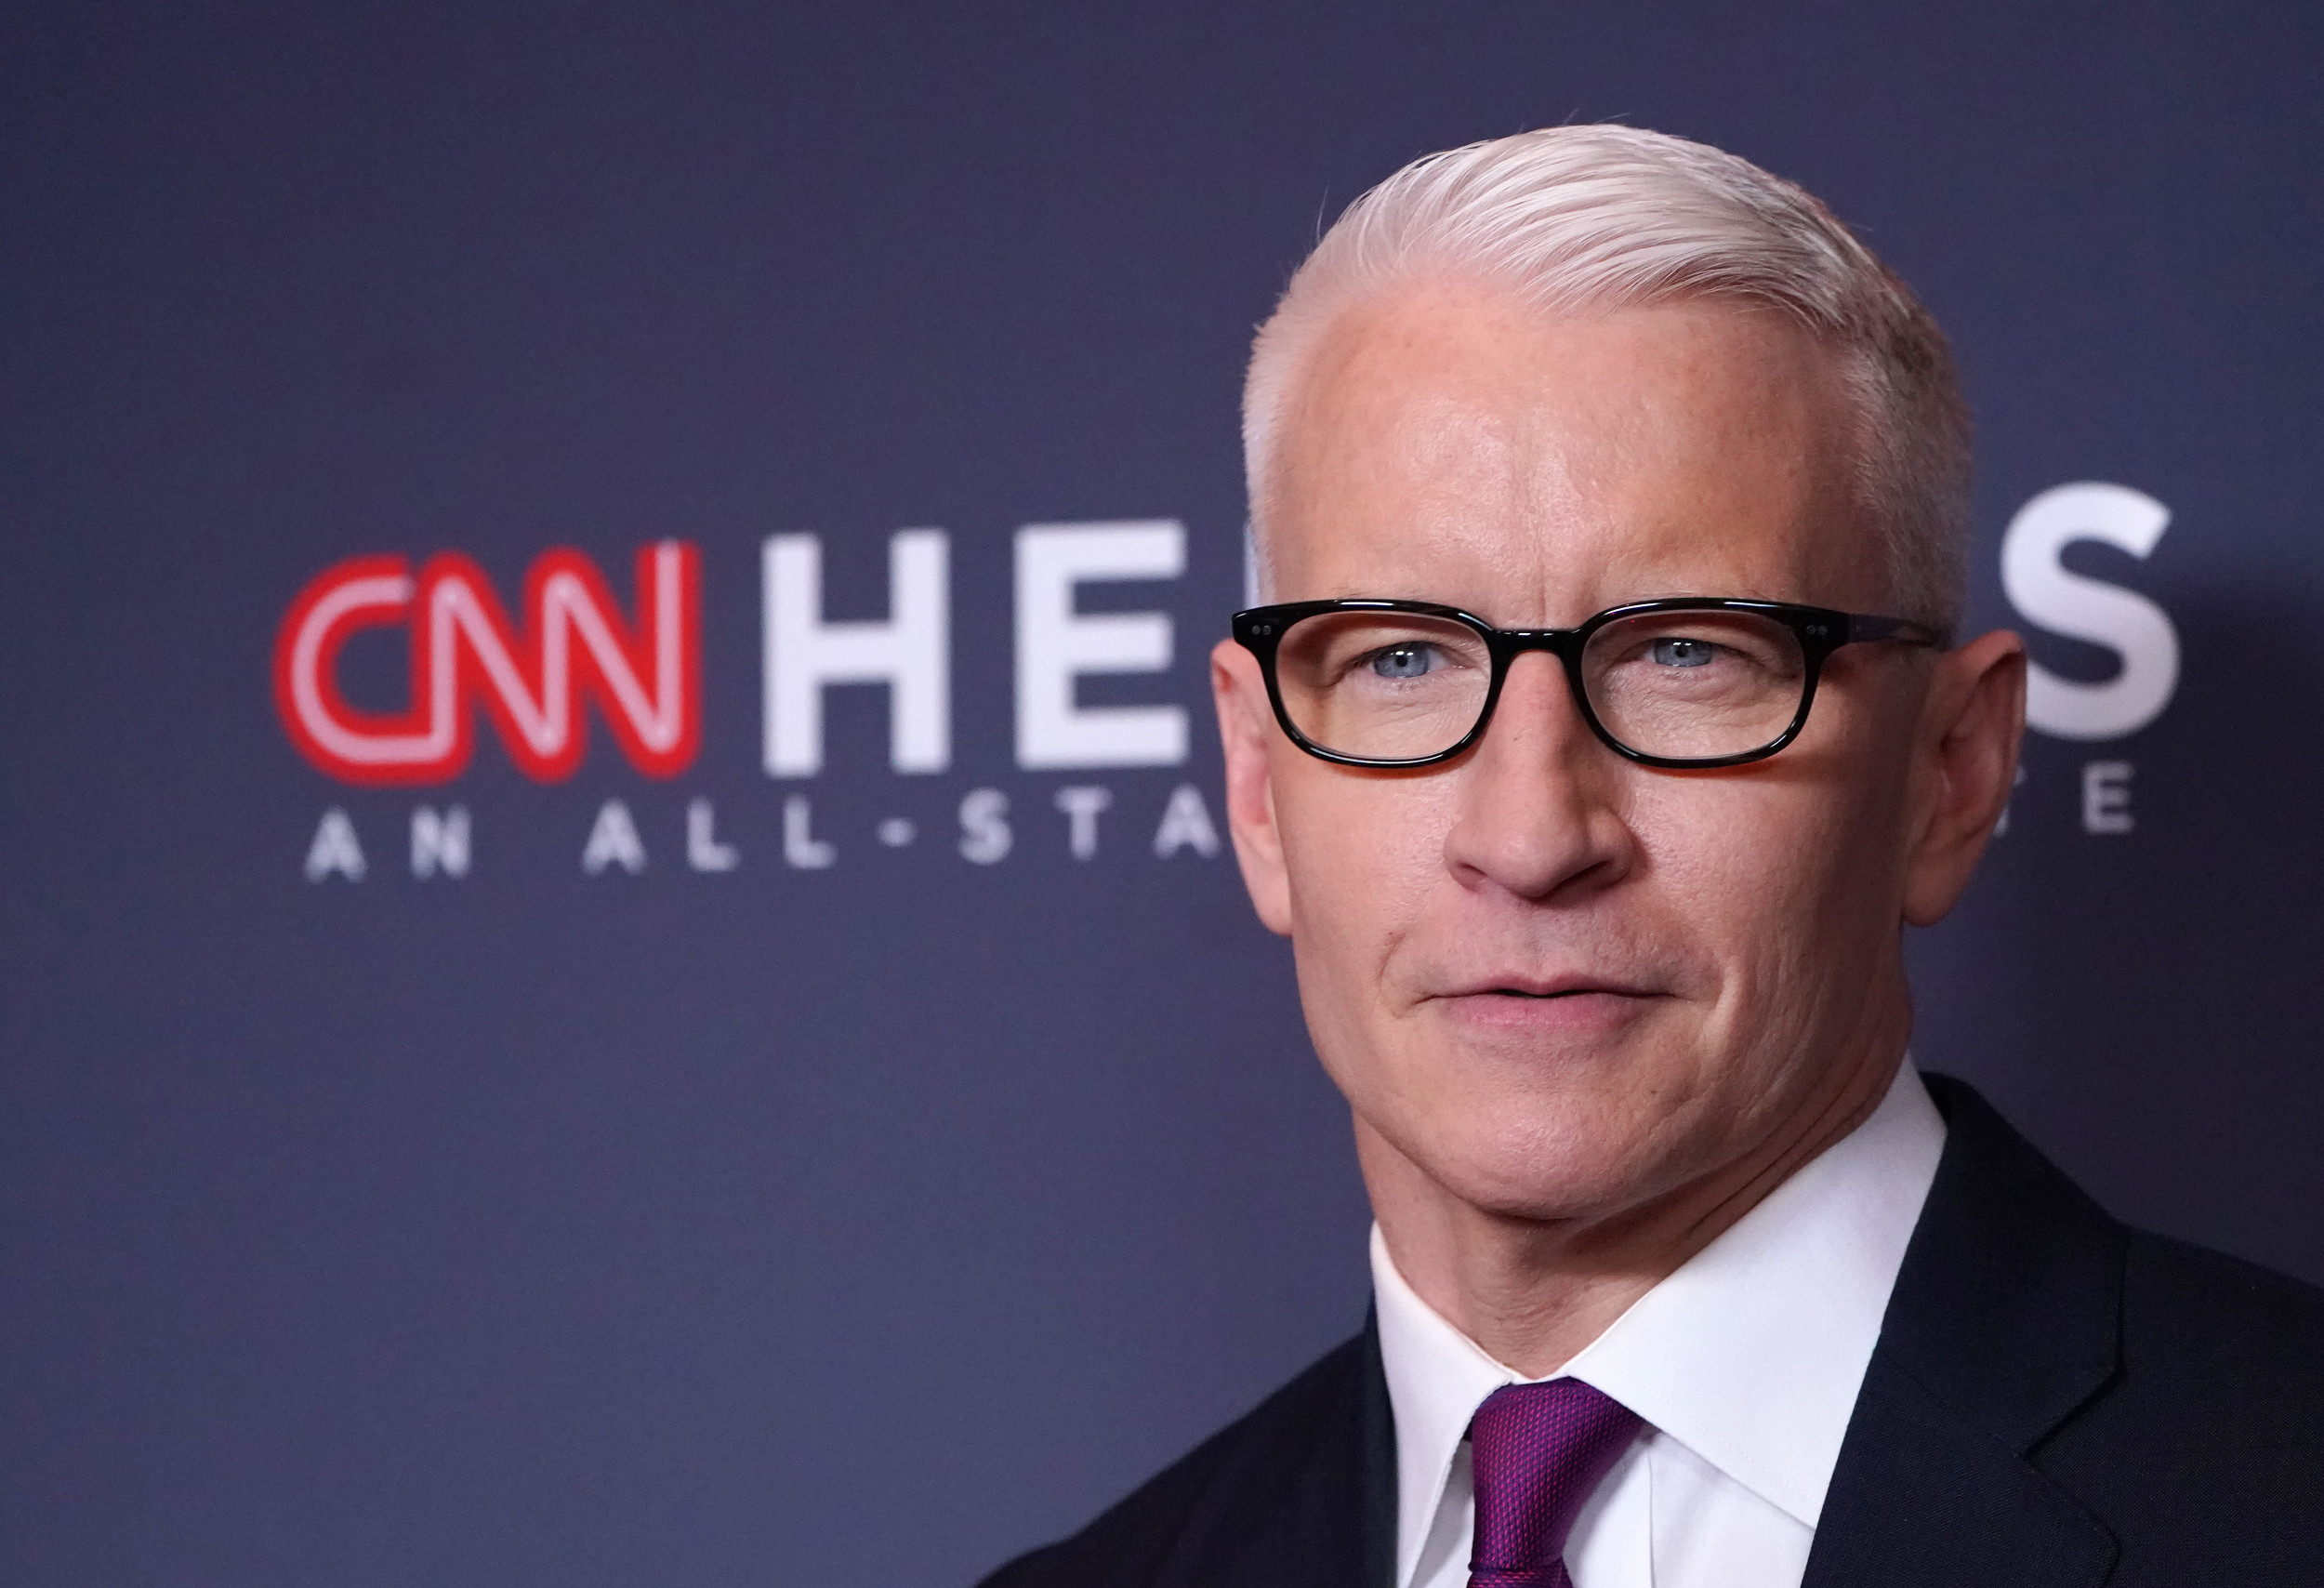 My Pillow Creator Michael Lindell Threatens CNN with Exact Redress Over Anderson Cooper Interview